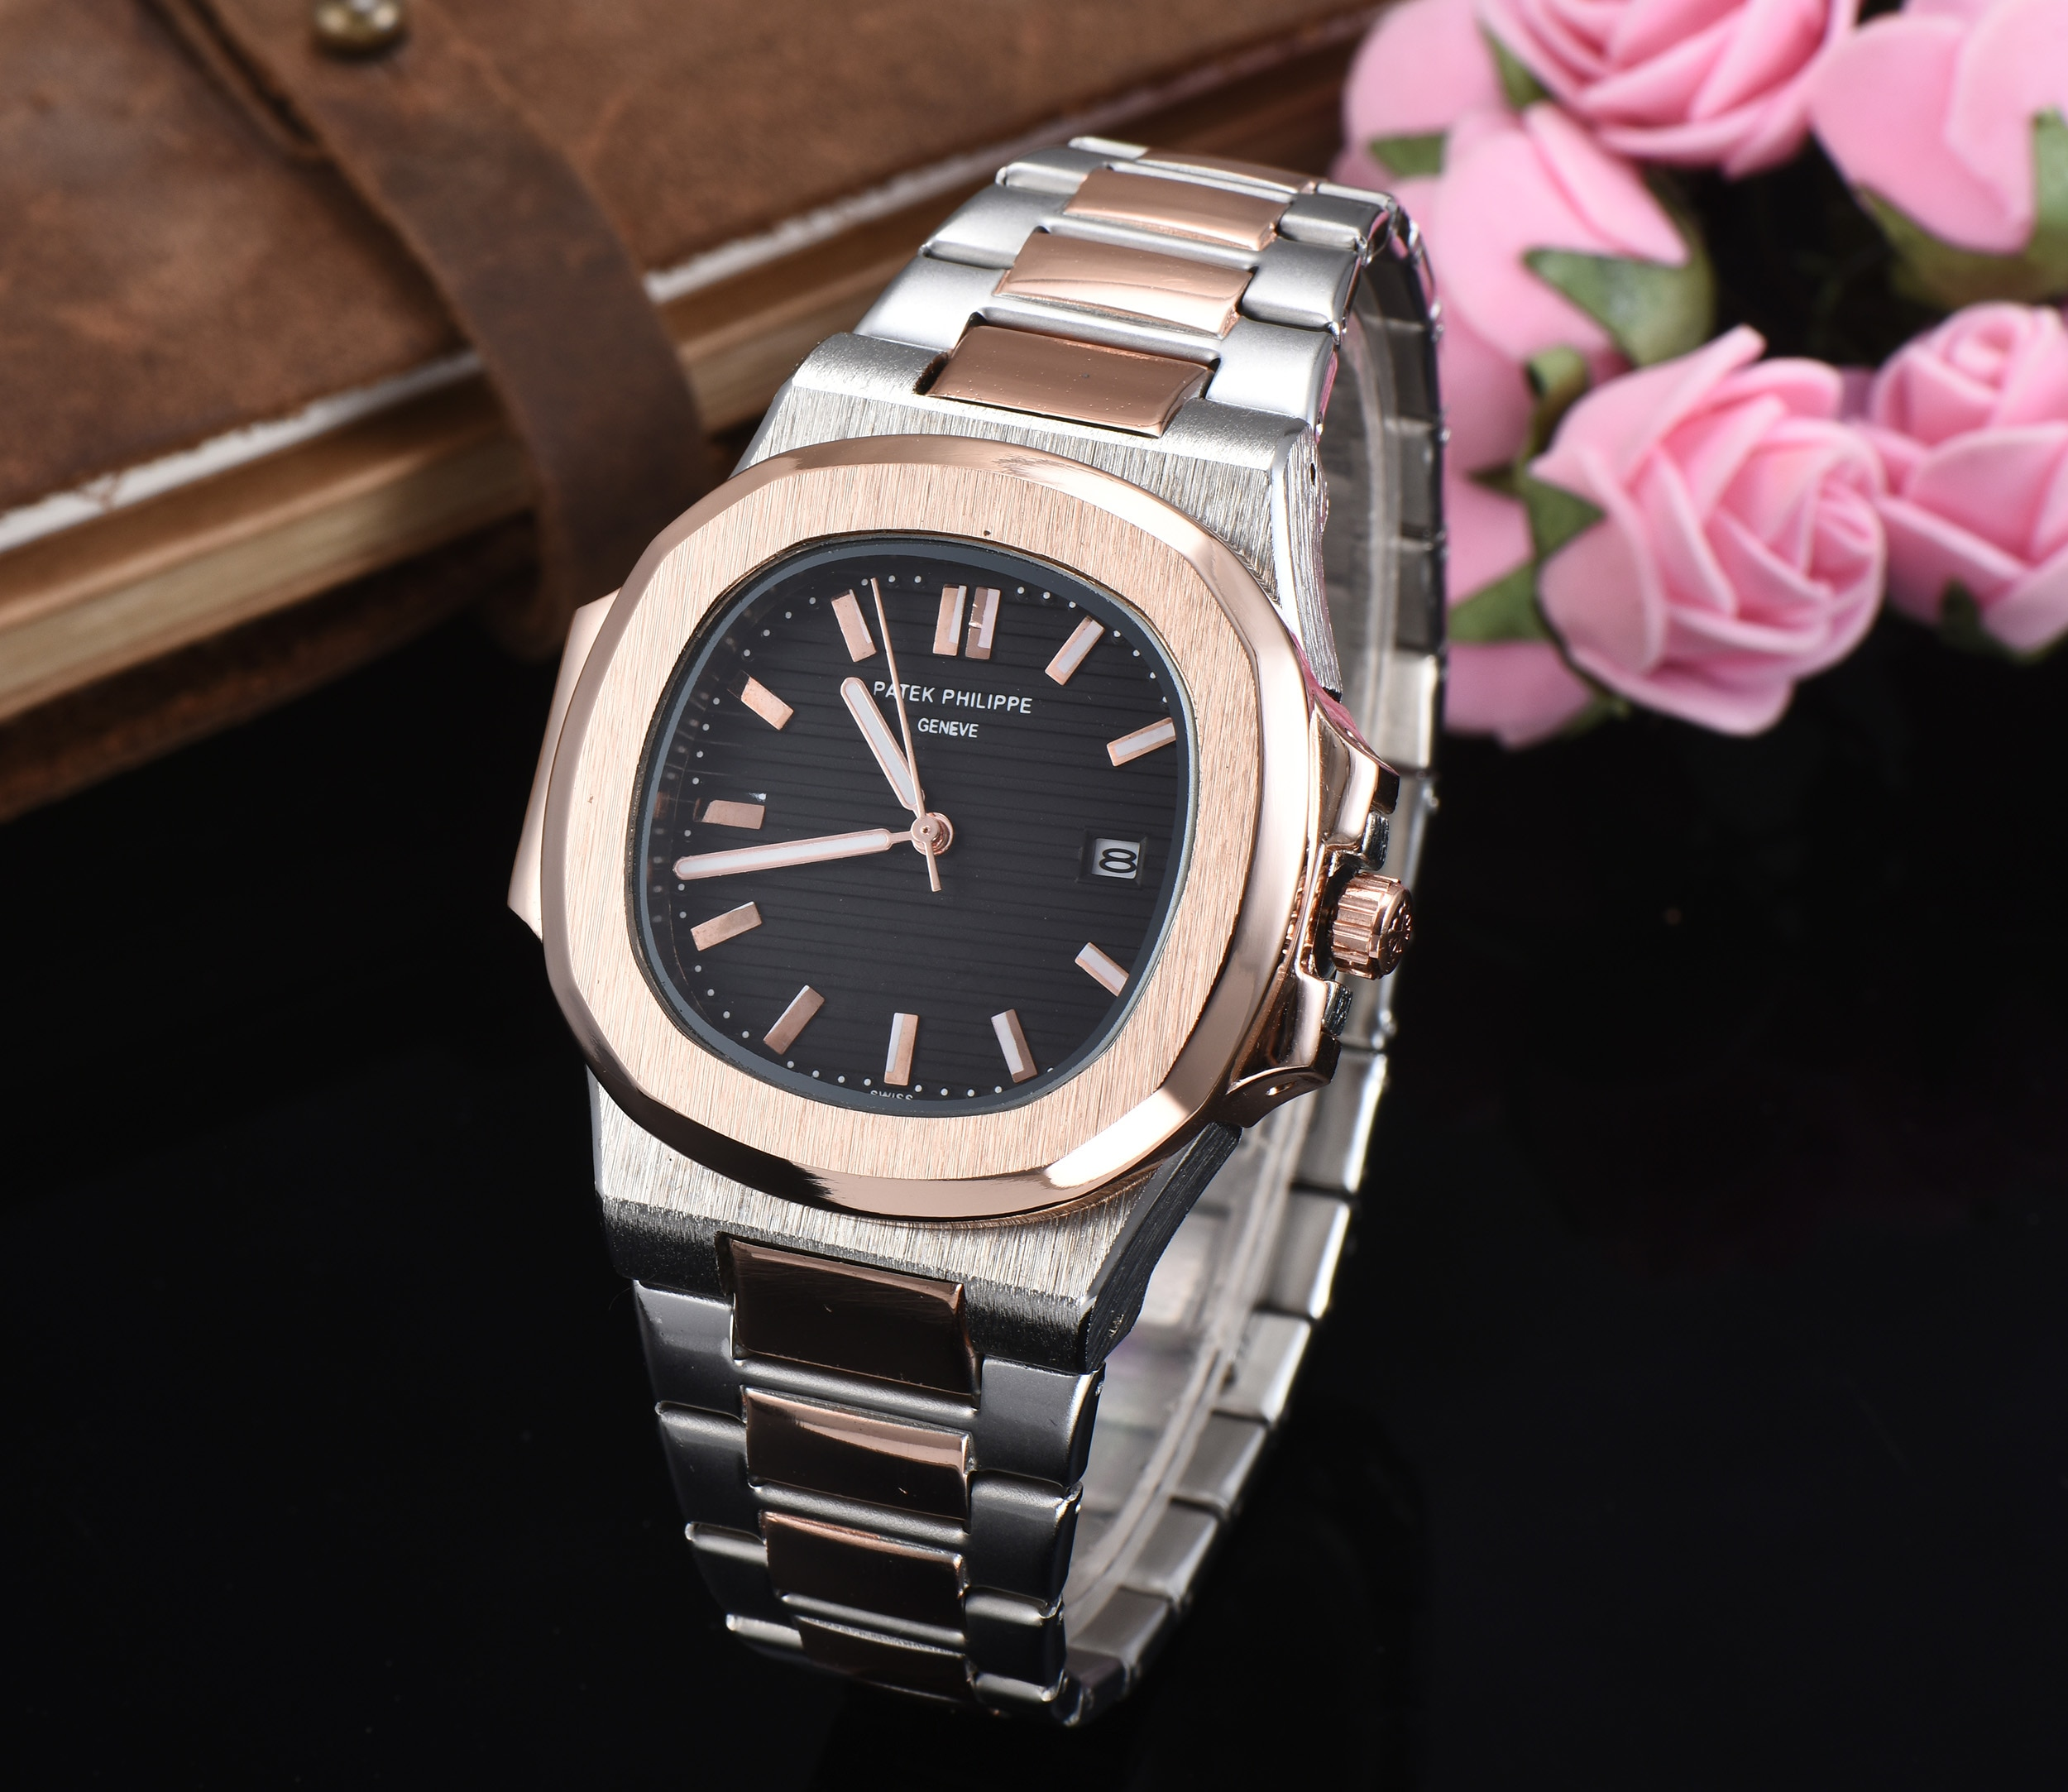 Watches for Men 2021 Top Fashion Brand Quartz Watch Daily Life Waterproof Simple Stainless Steel Str